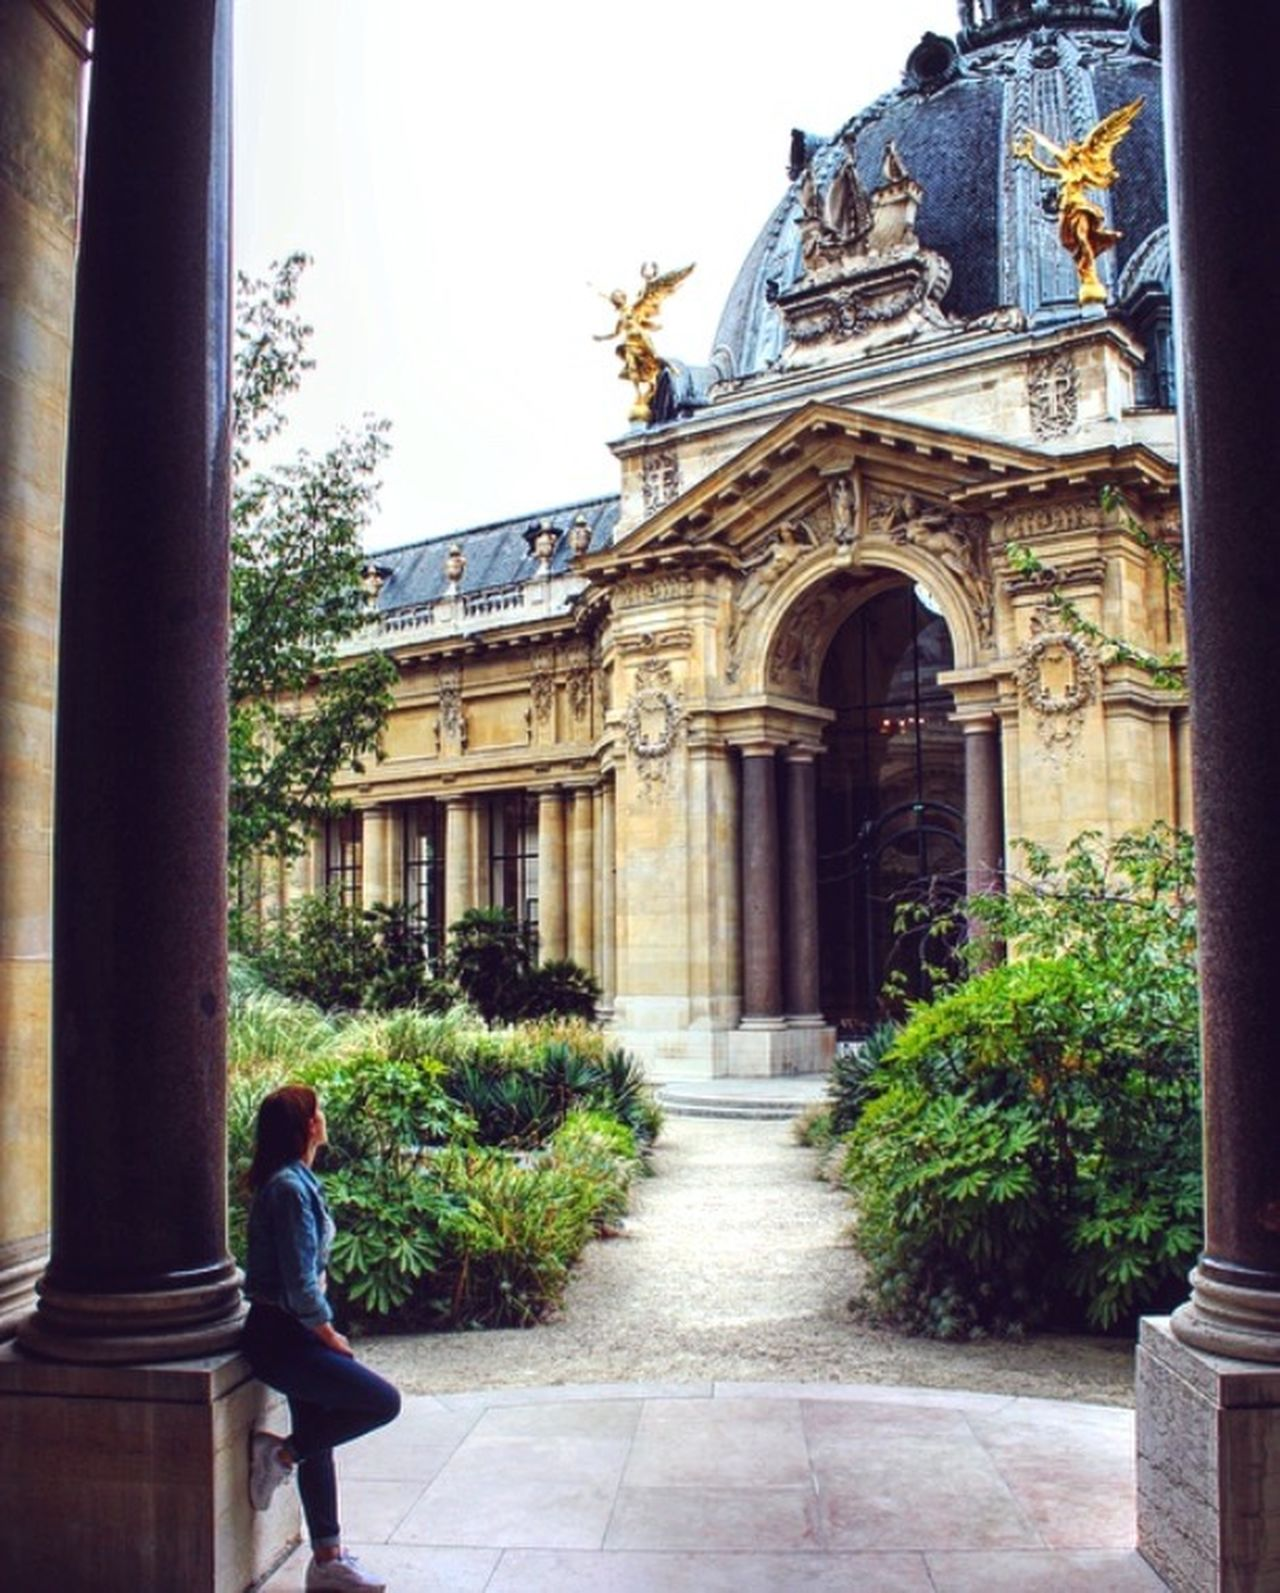 My Favorite Place Paris France Paris, France  Love Art Art Museum Museum